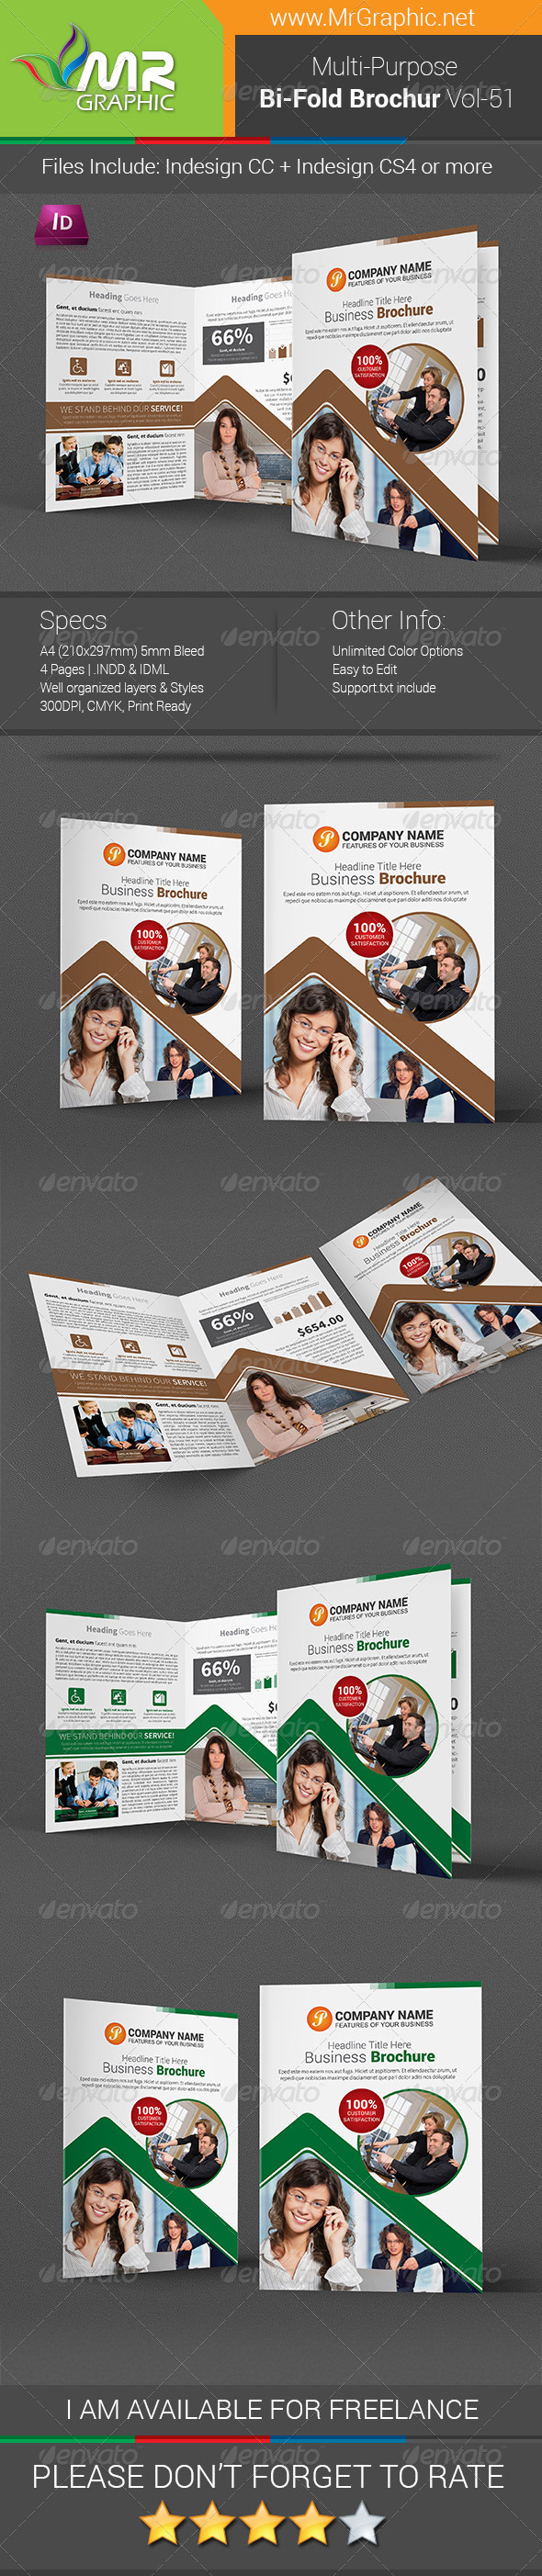 GraphicRiver Multi-Purpose Bi-Fold Brochure Template Vol-51 7415849